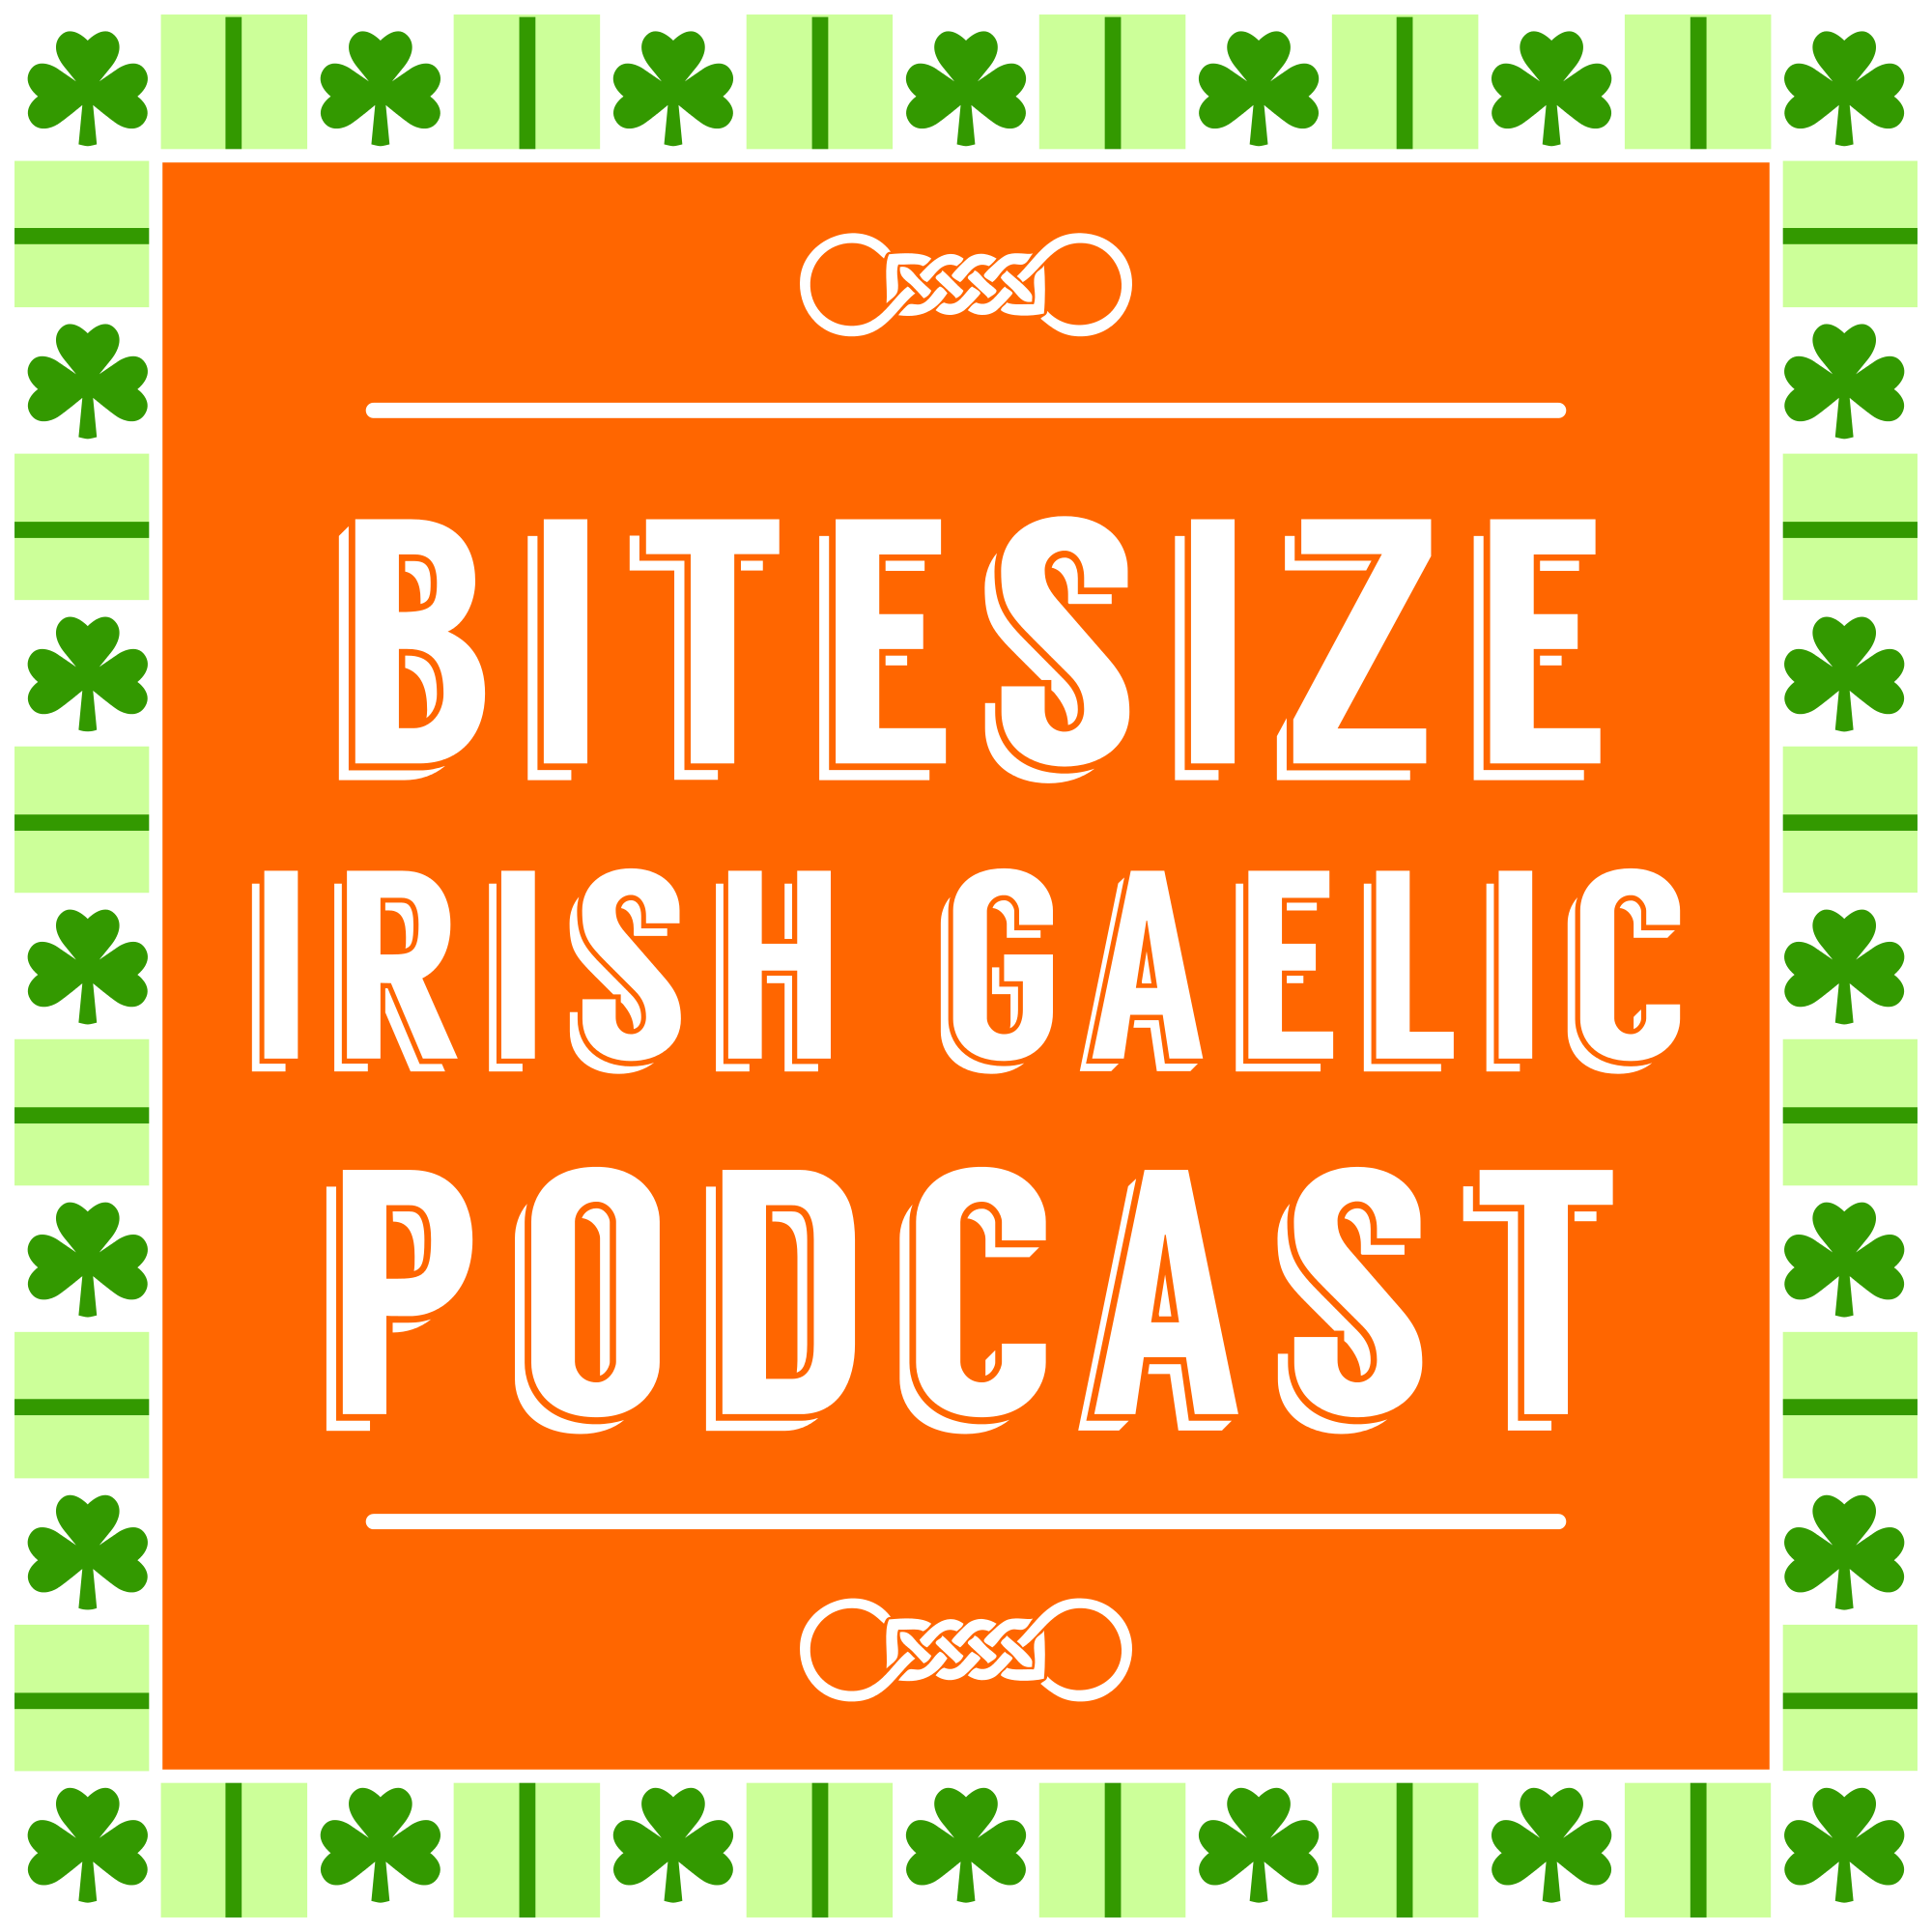 A Taste of Irish Culture with the Bitesize Irish Gaelic Podcast – AUDIO